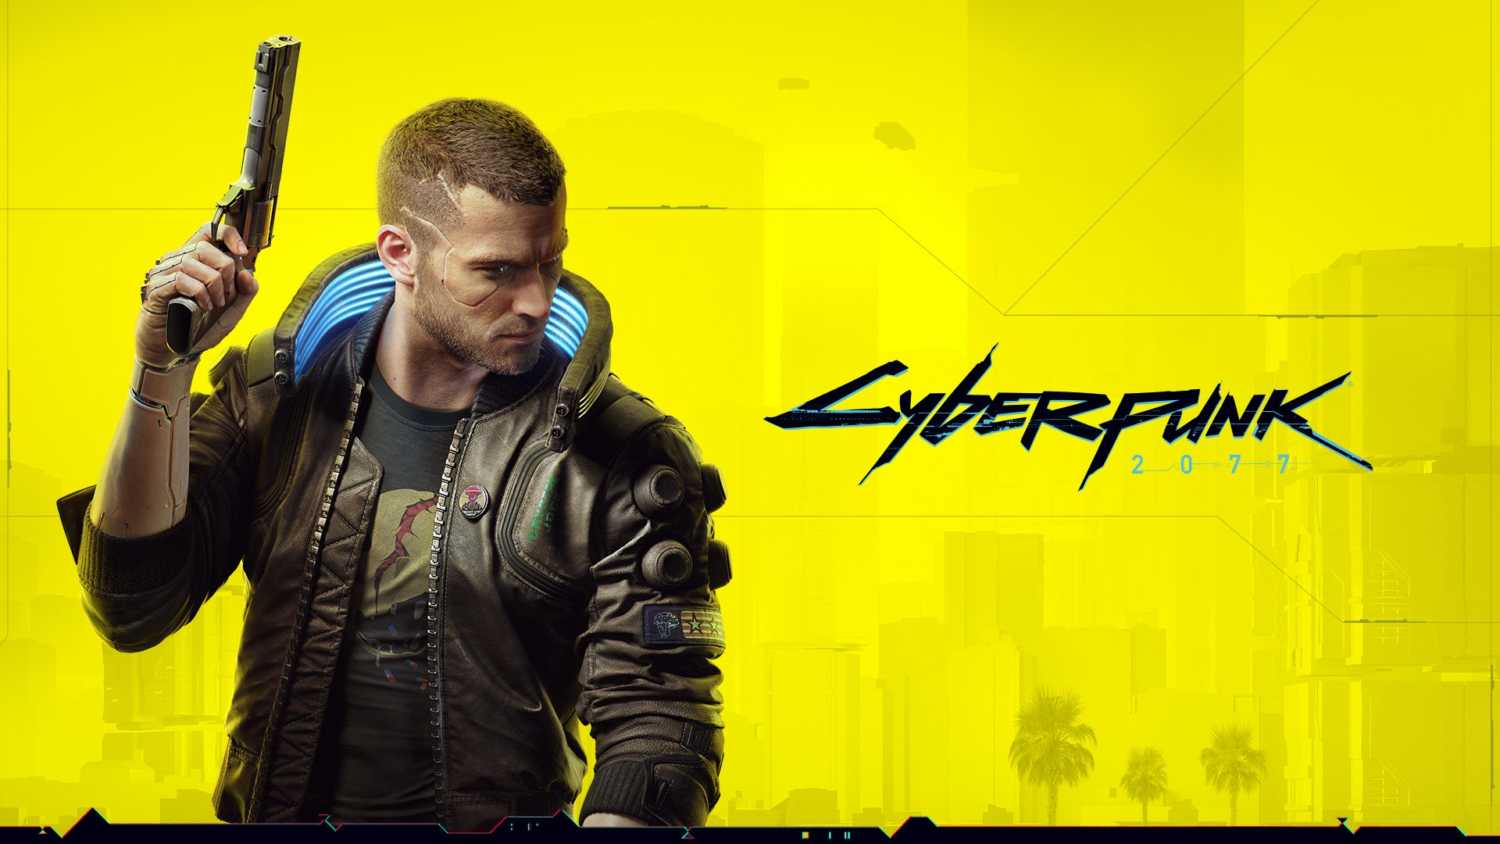 Cyberpunk 2077 Breach/Hacking Tutorial Image